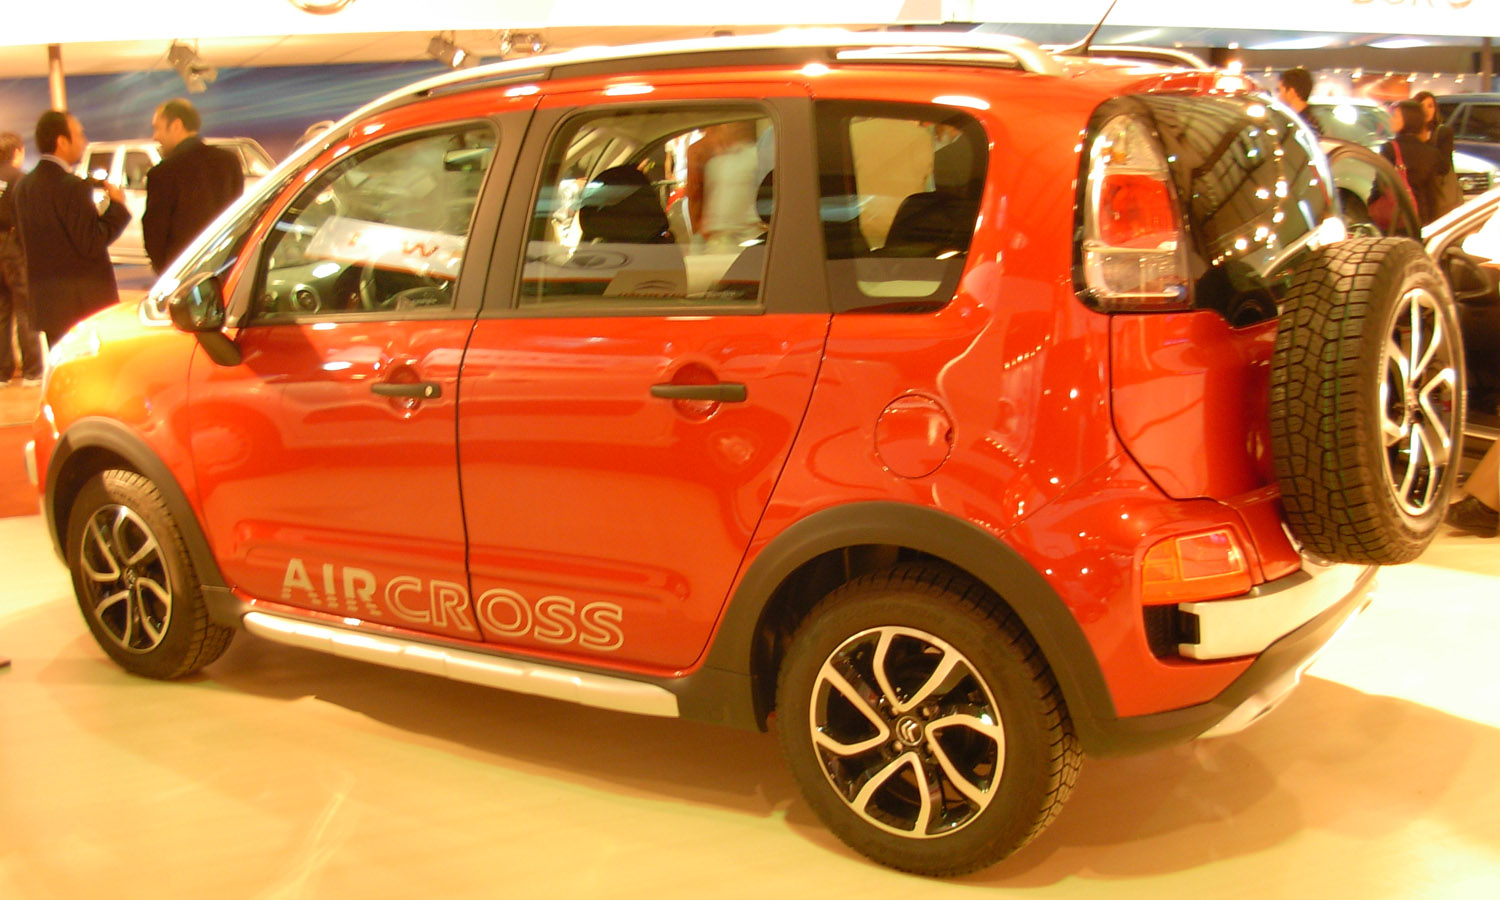 file citro n c3 aircross rear 2012 montevideo motor wikimedia commons. Black Bedroom Furniture Sets. Home Design Ideas